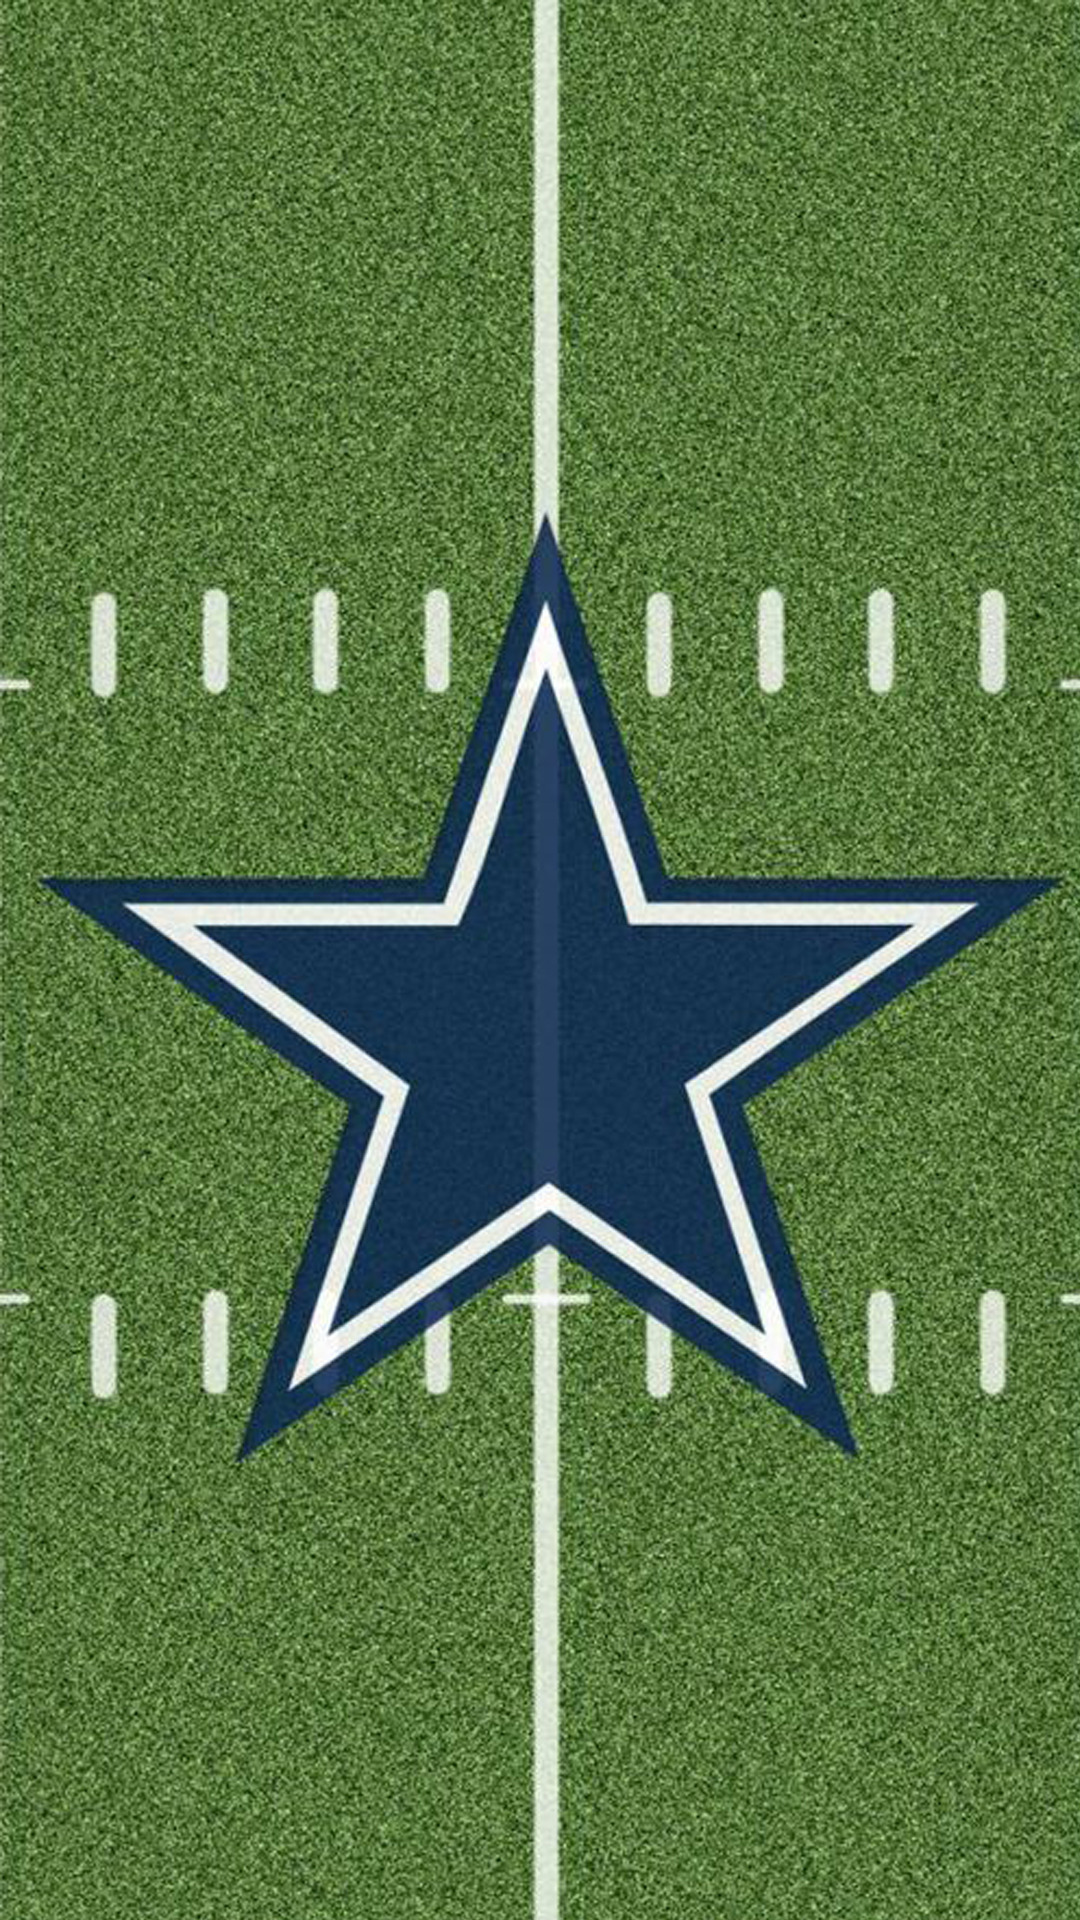 Dallas Cowboys Wallpaper For Cell Phones With Logo Hd Wallpapers